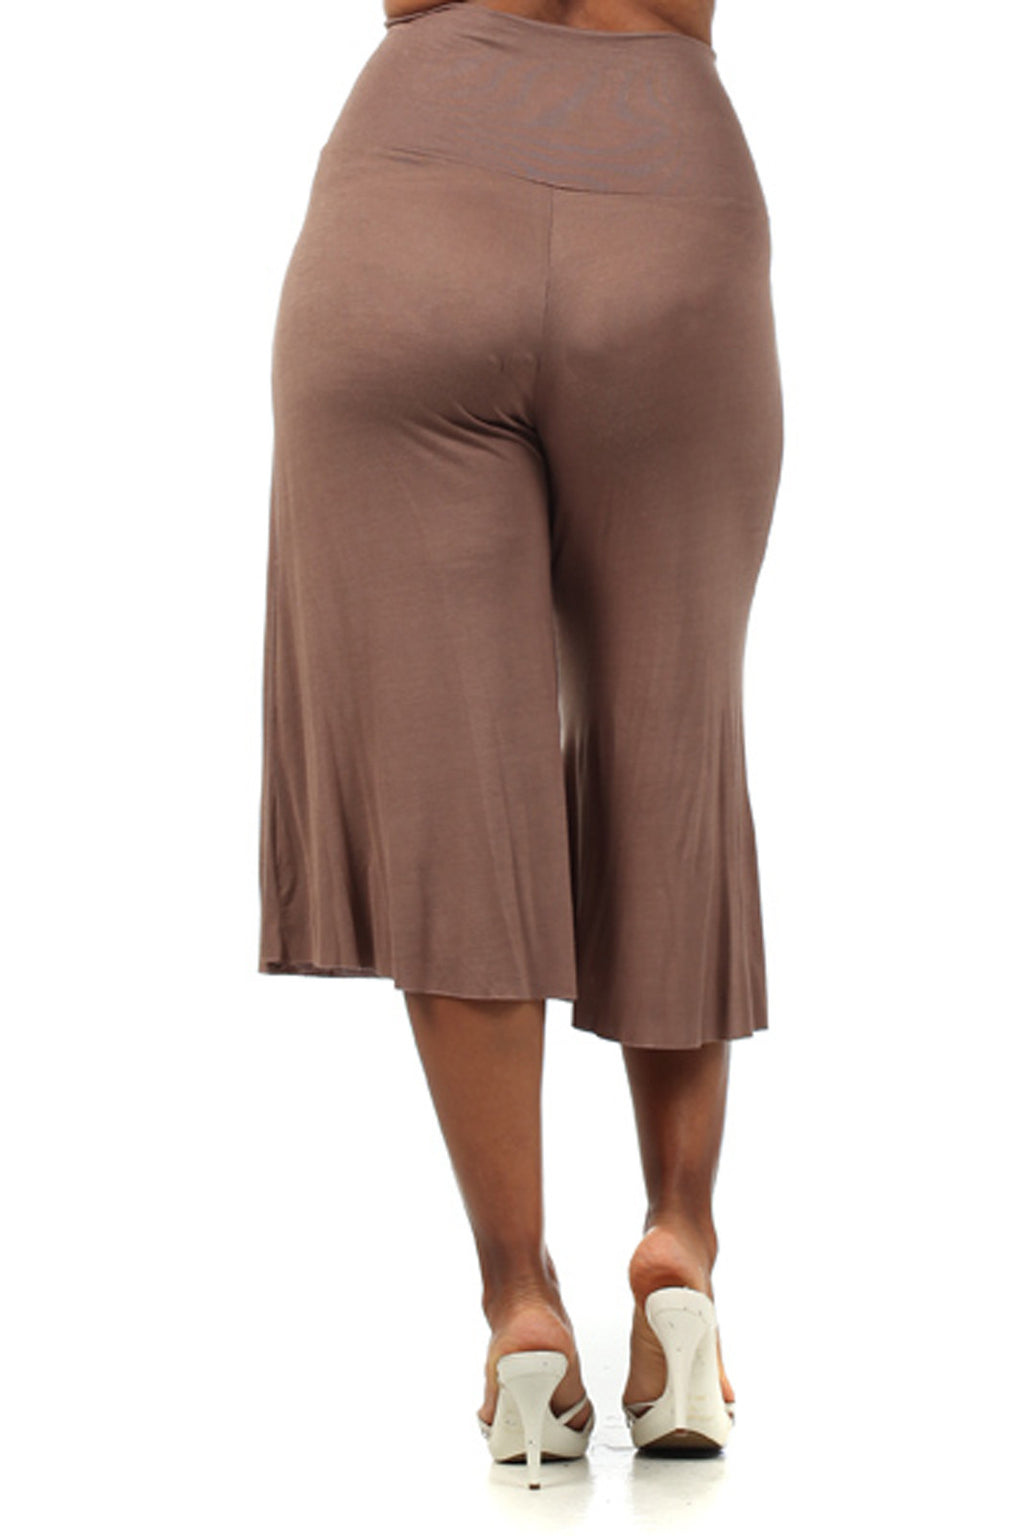 Plus Size Maternity Gaucho Pants